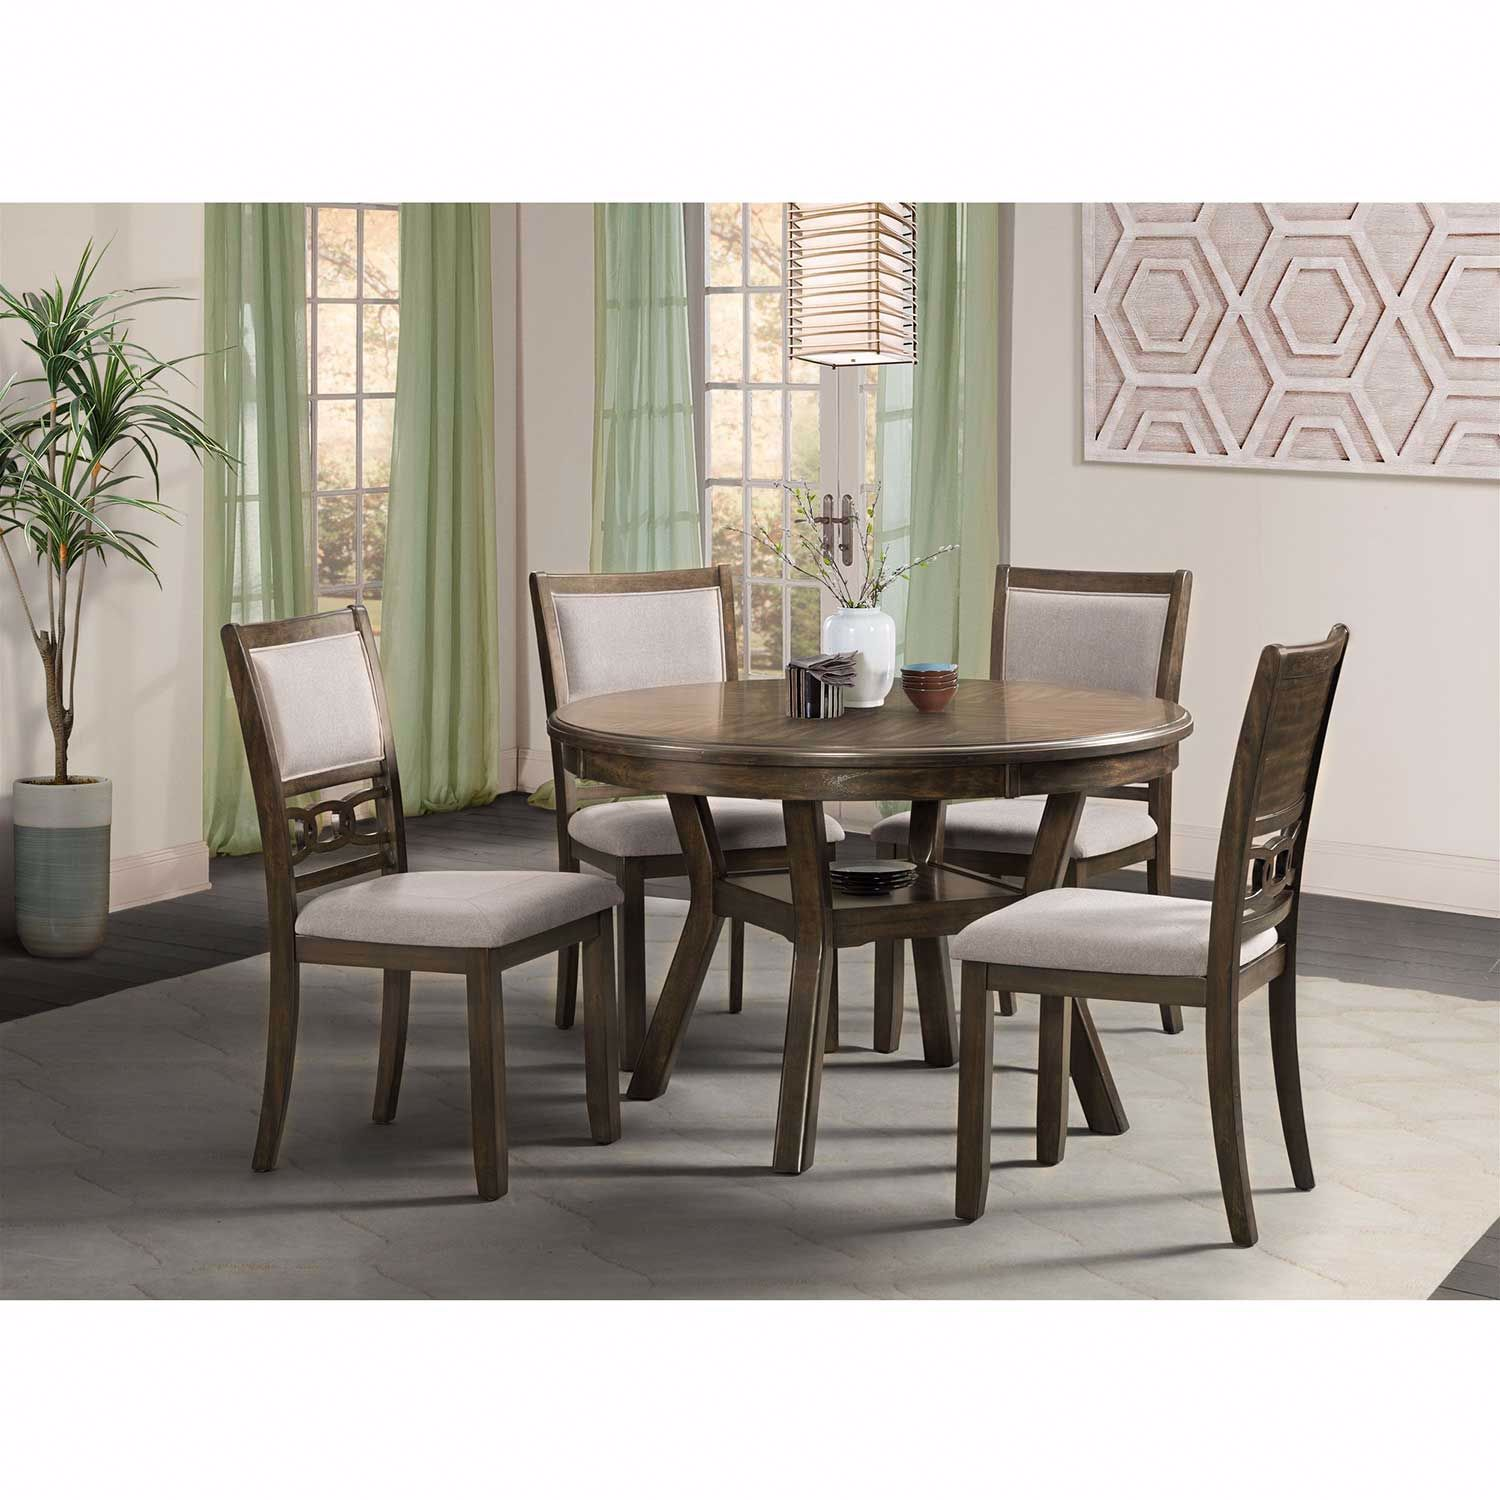 Picture of Amherst 5 Piece Regular Dining Set